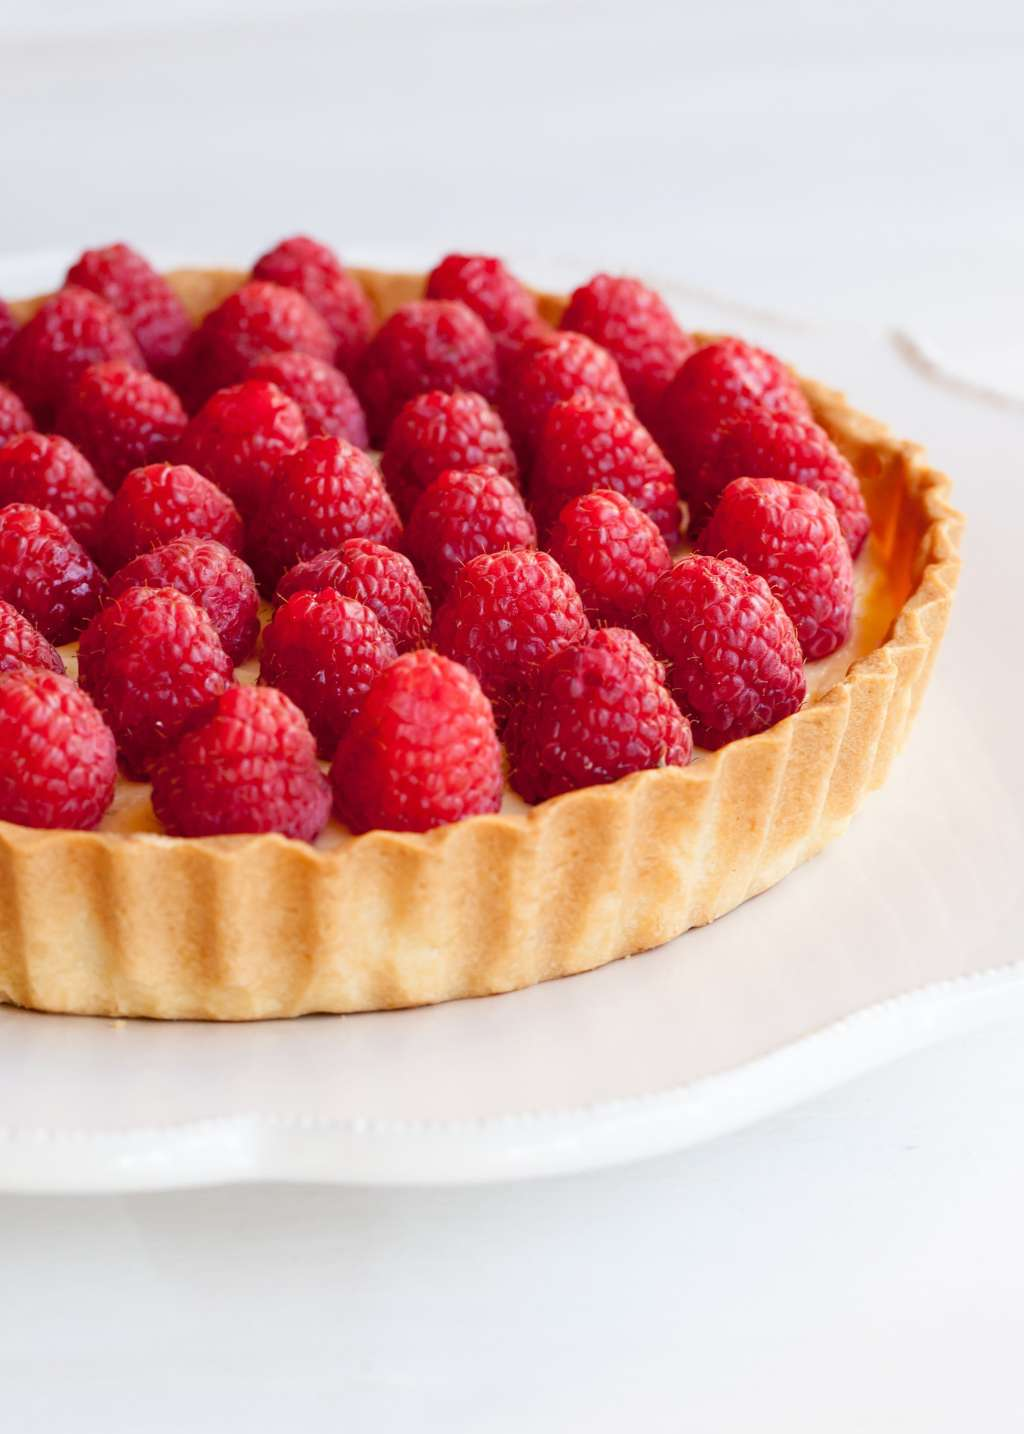 How To Make Pâte Sablée for Tarts and Pastries